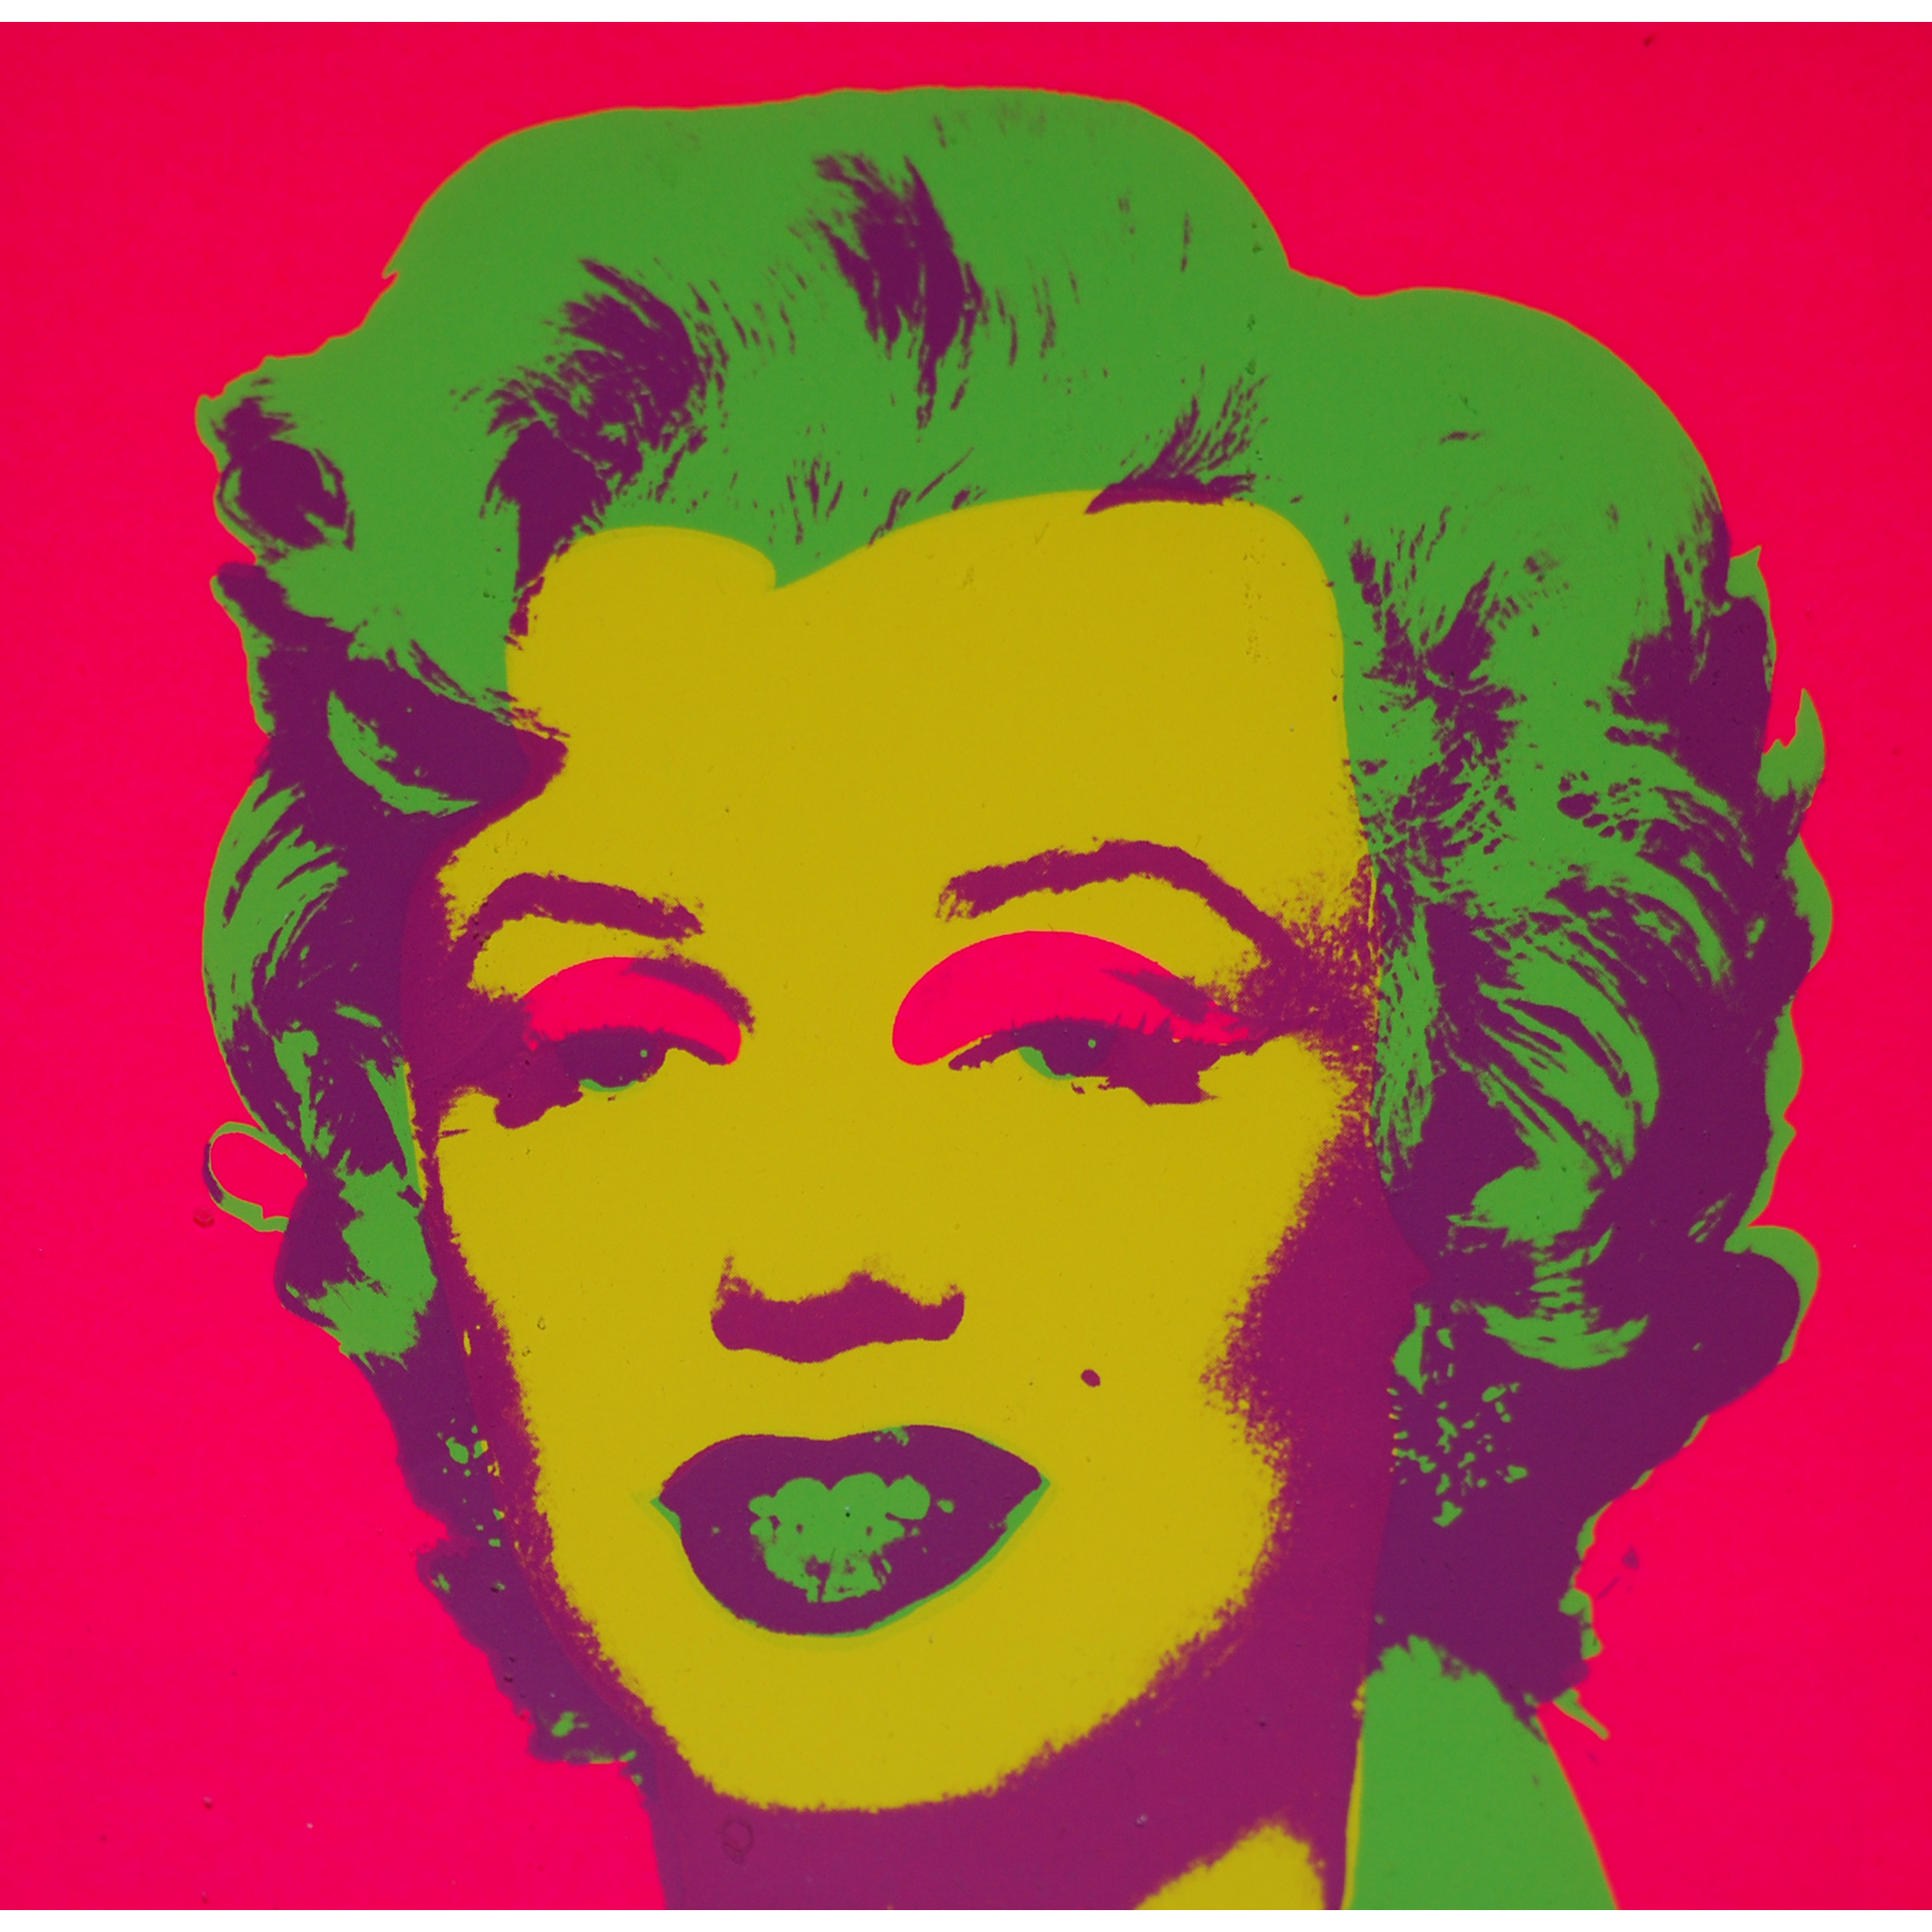 Andy Warhol | Marilyn Monroe 21 | 1967 | Image of Artists' work.